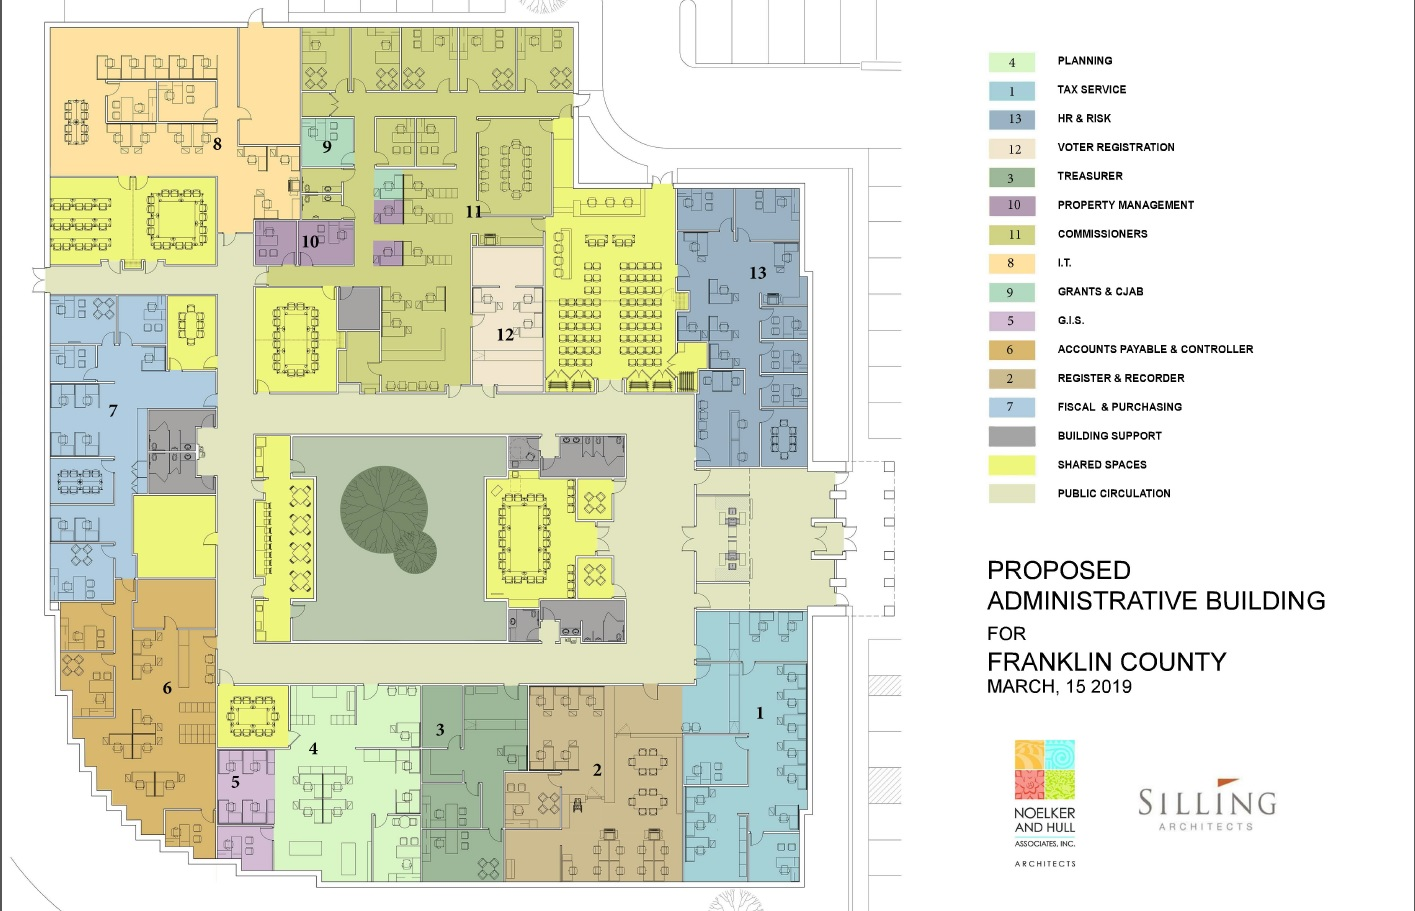 Floor plans for the future Franklin County Administration Building.